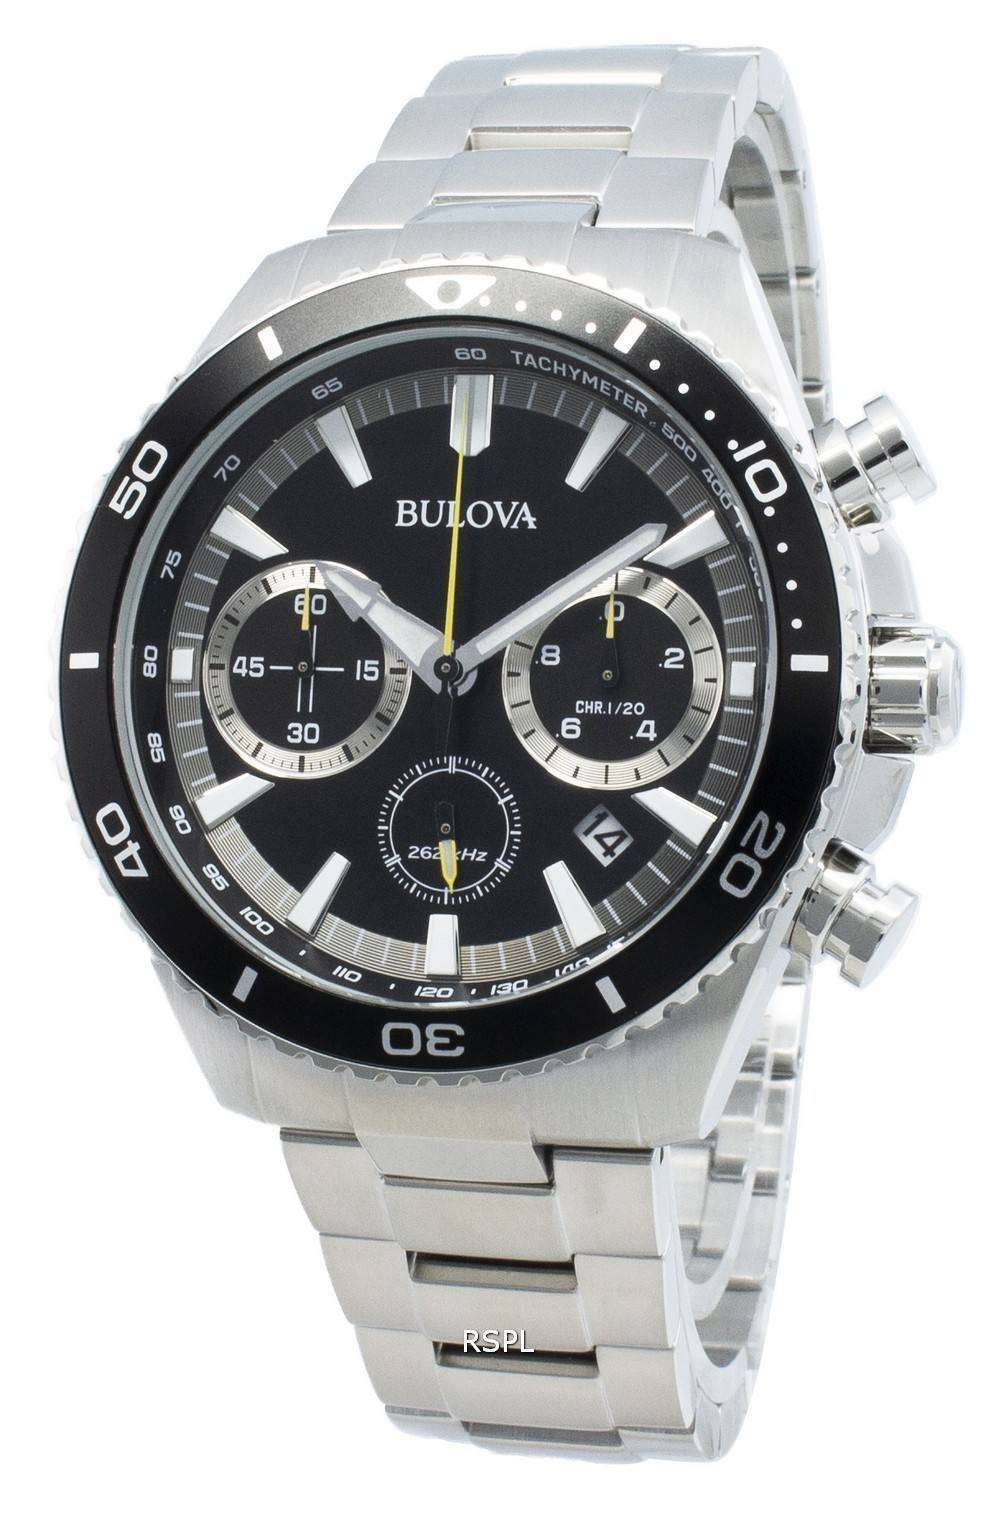 Bulova 98B298 Chronograph Quartz Men's Watch